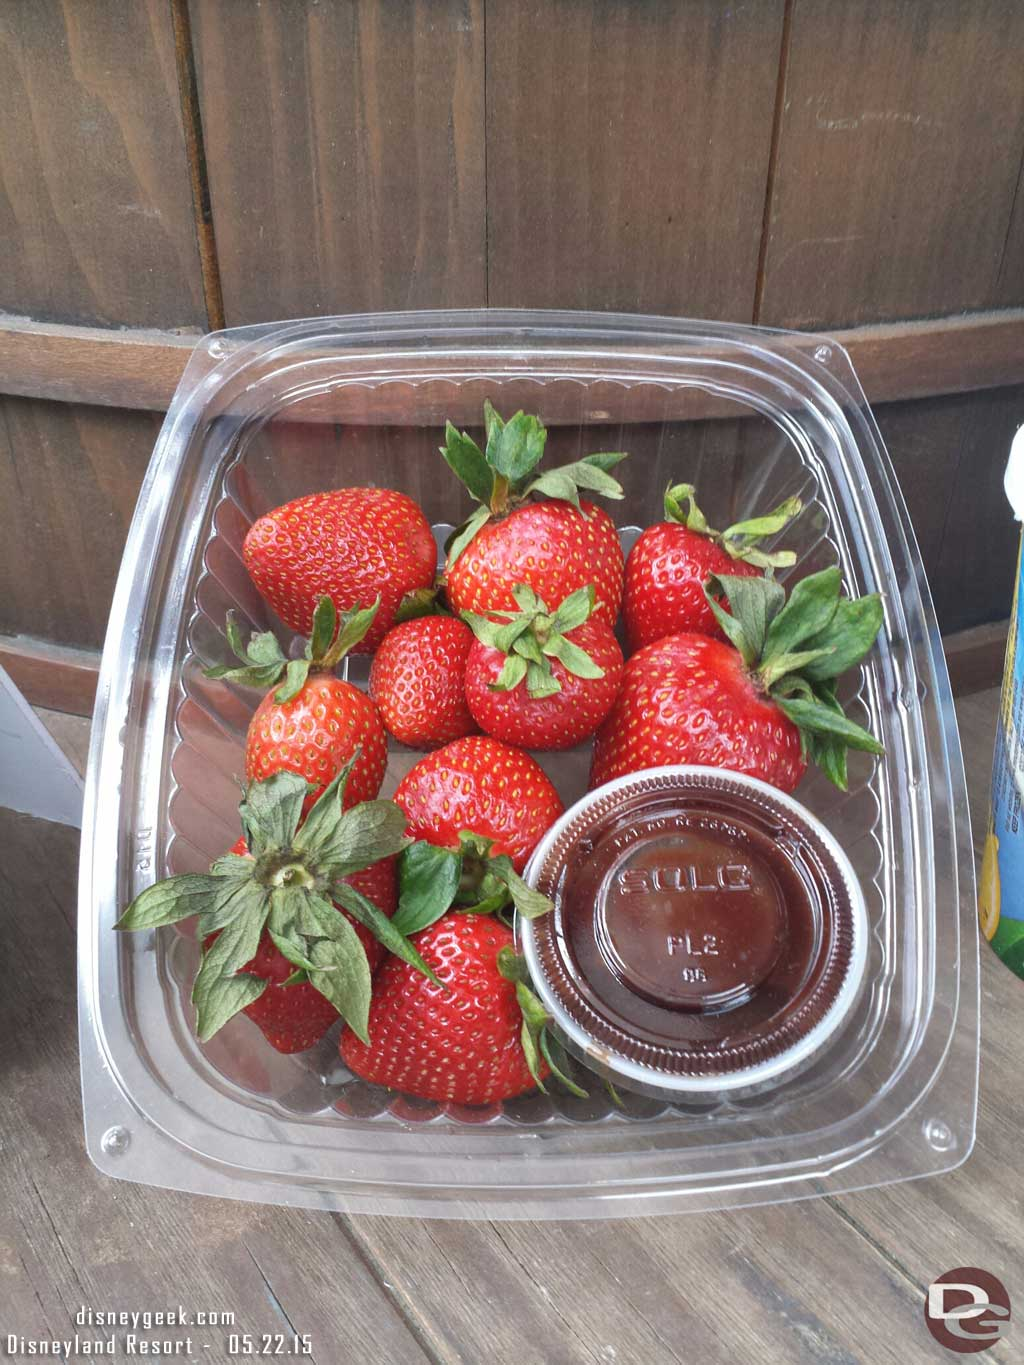 Fresh strawberries with chocolate dip $4 @ Chuck Wagon Delights #Disneyland